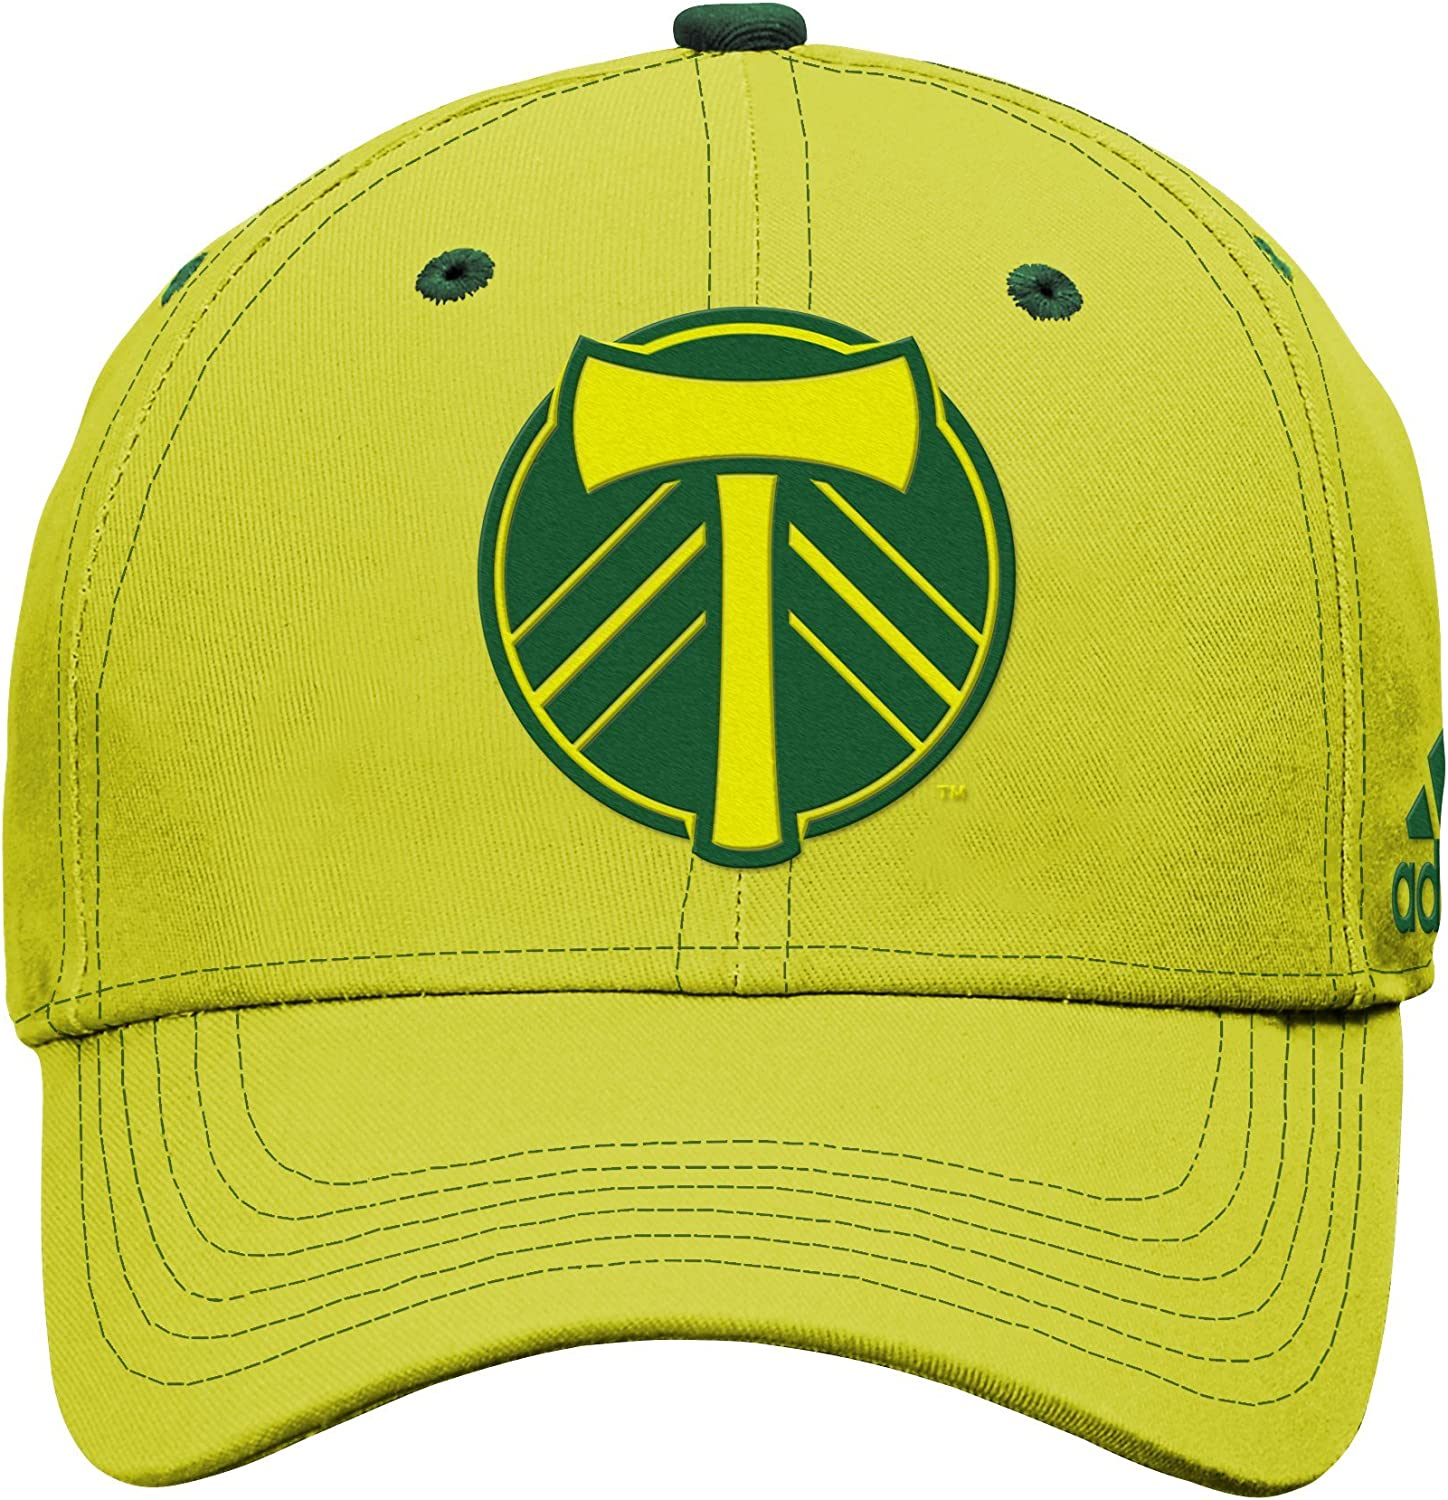 MLS by Outerstuff Boys Tonal Logo Structured Adjustable Hat